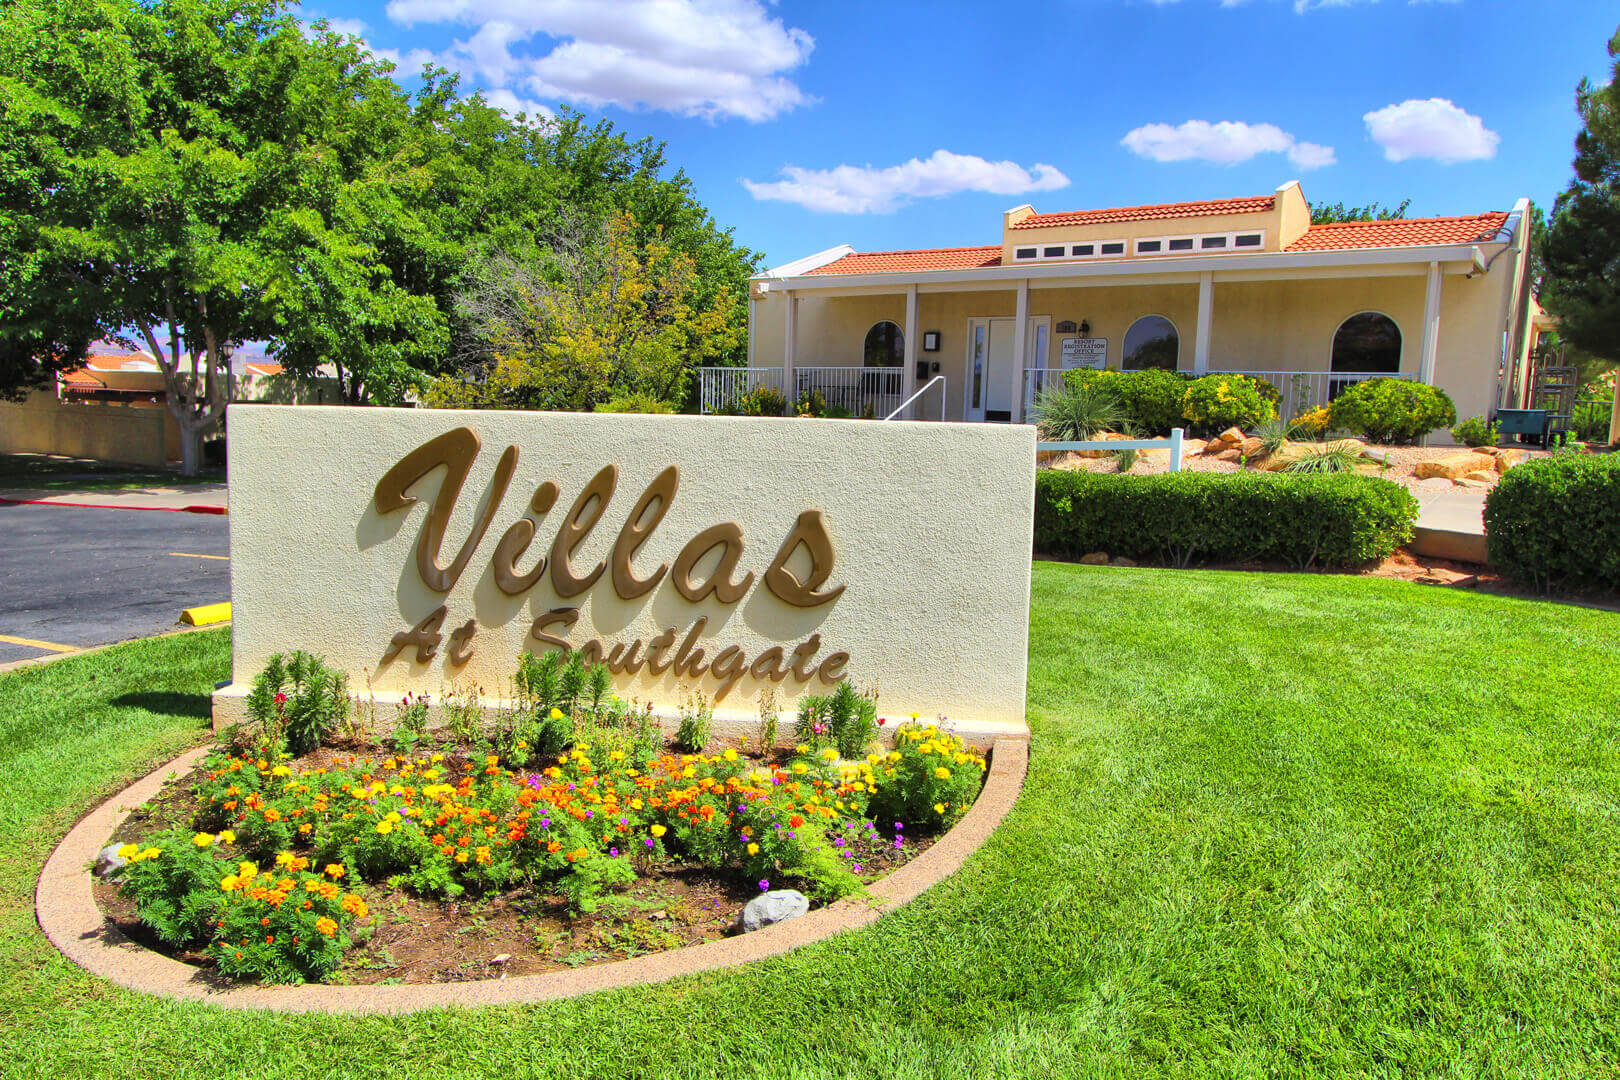 Villas At Southgate Signage